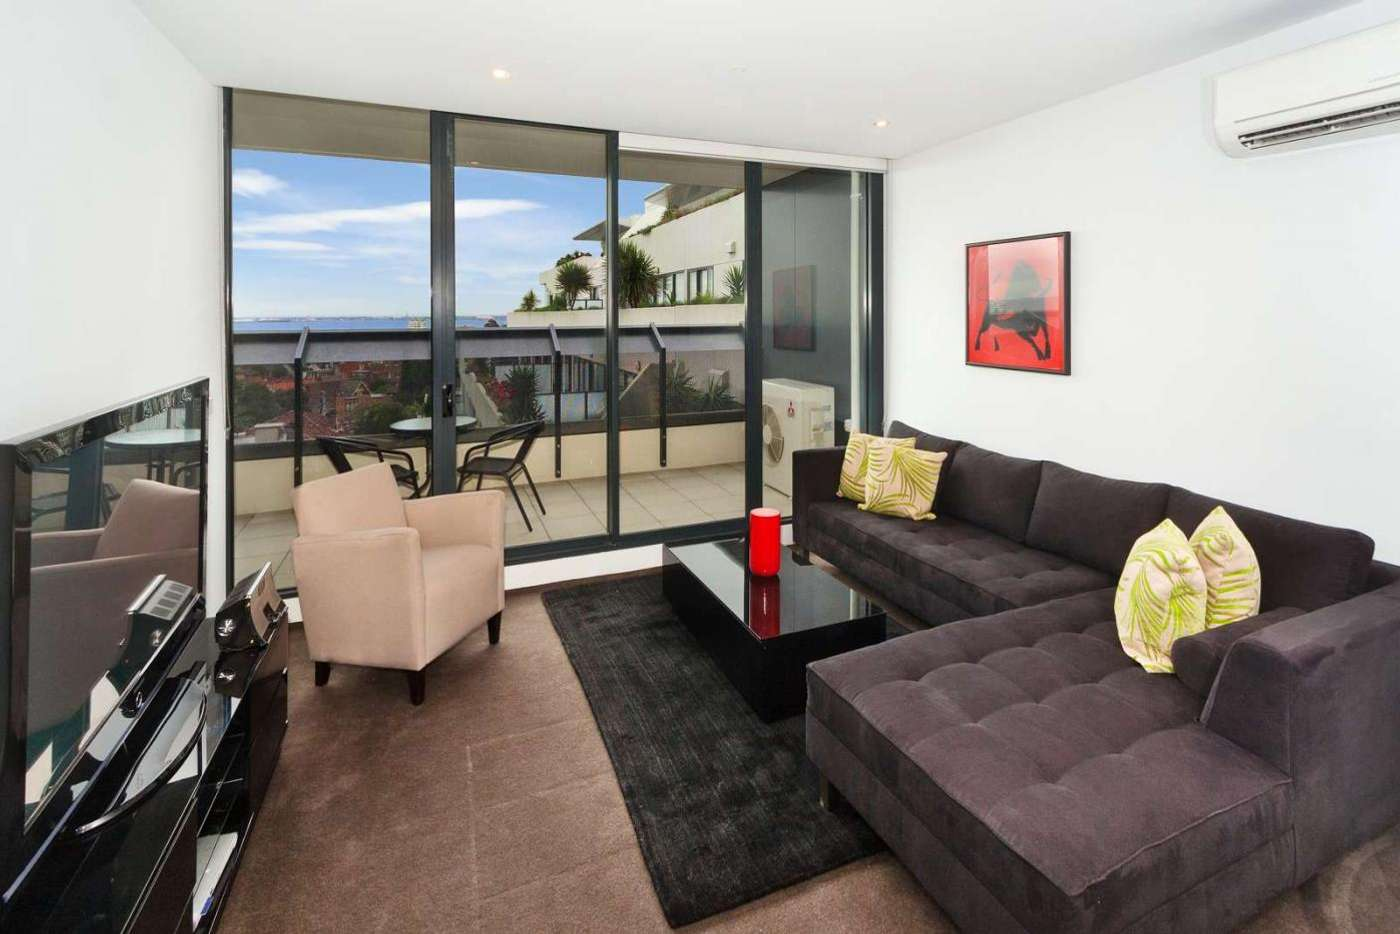 Main view of Homely apartment listing, 404/181 St Kilda Road, St Kilda VIC 3182